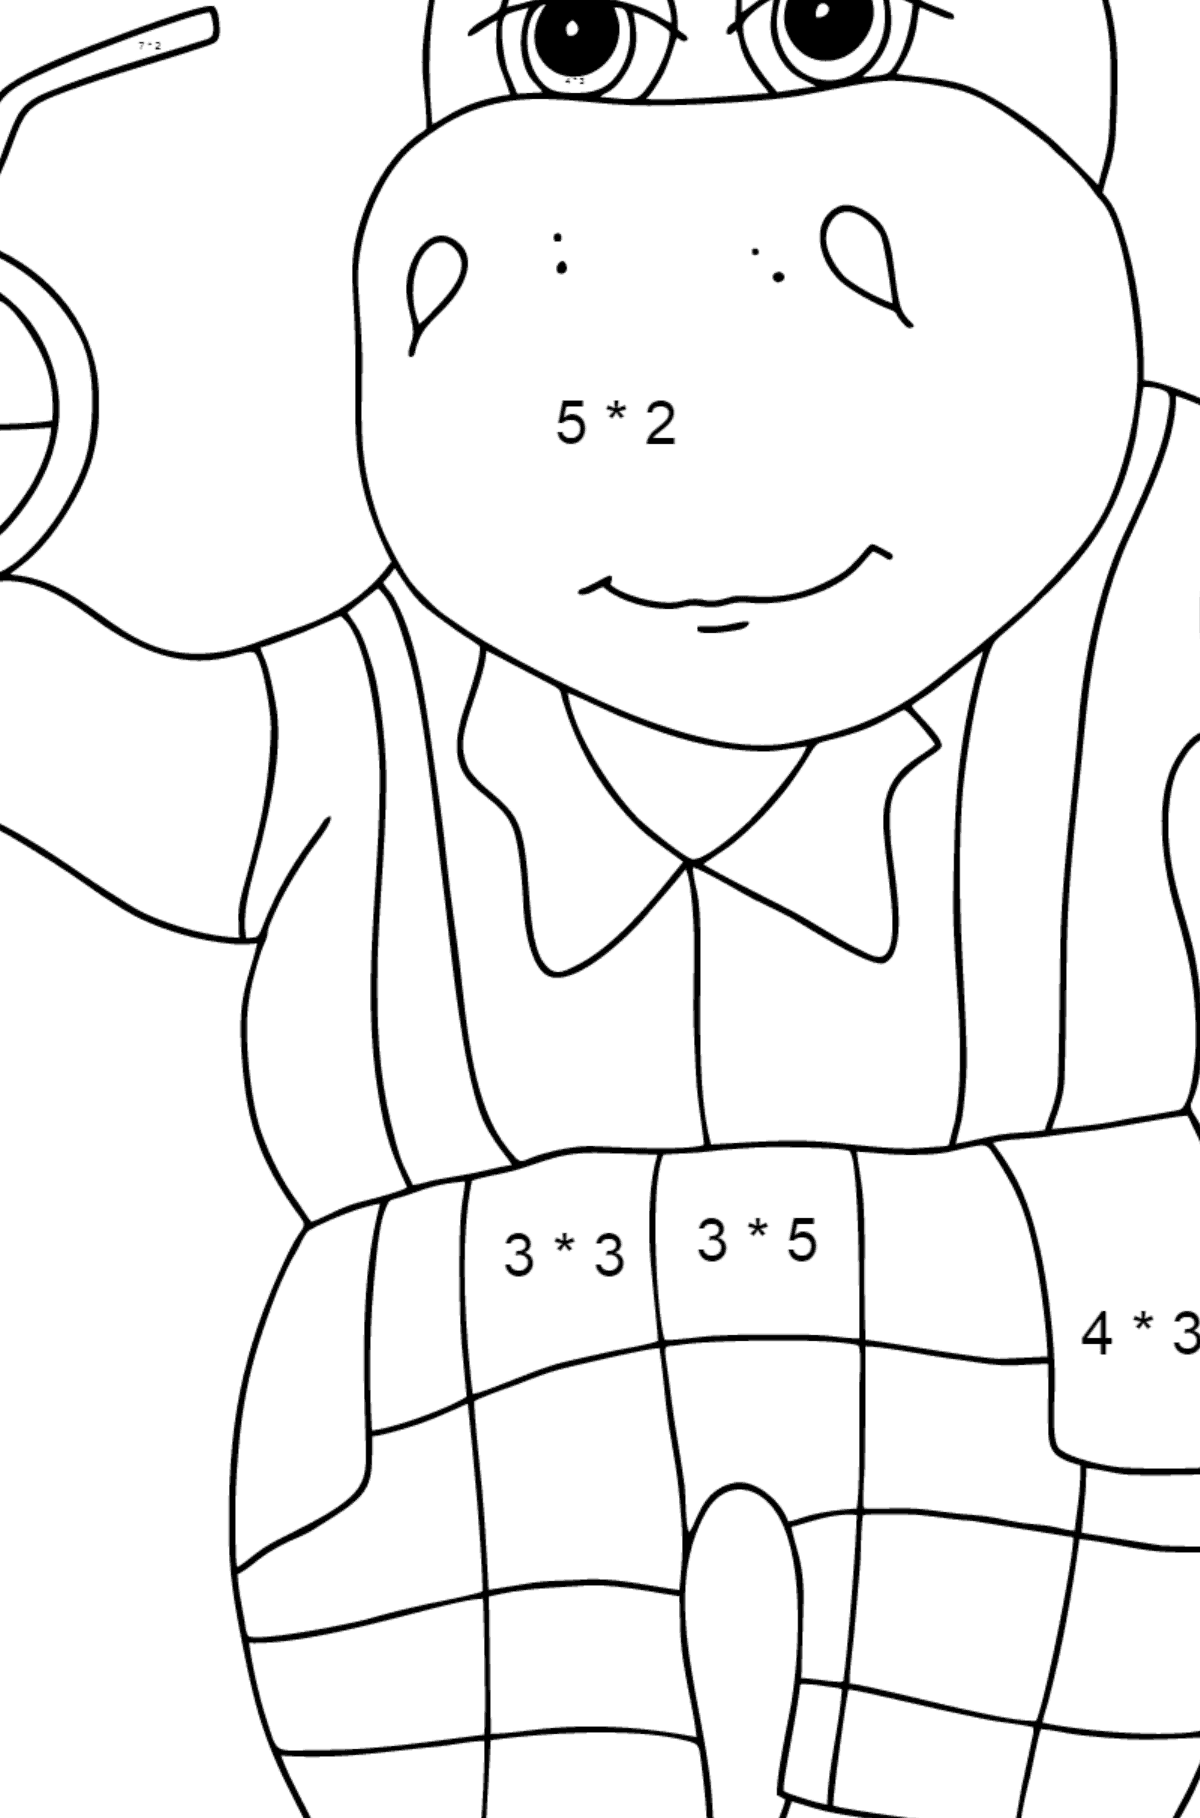 Coloring Page - A Hippo on a Beach with Juice for Kids  - Color by Number Multiplication